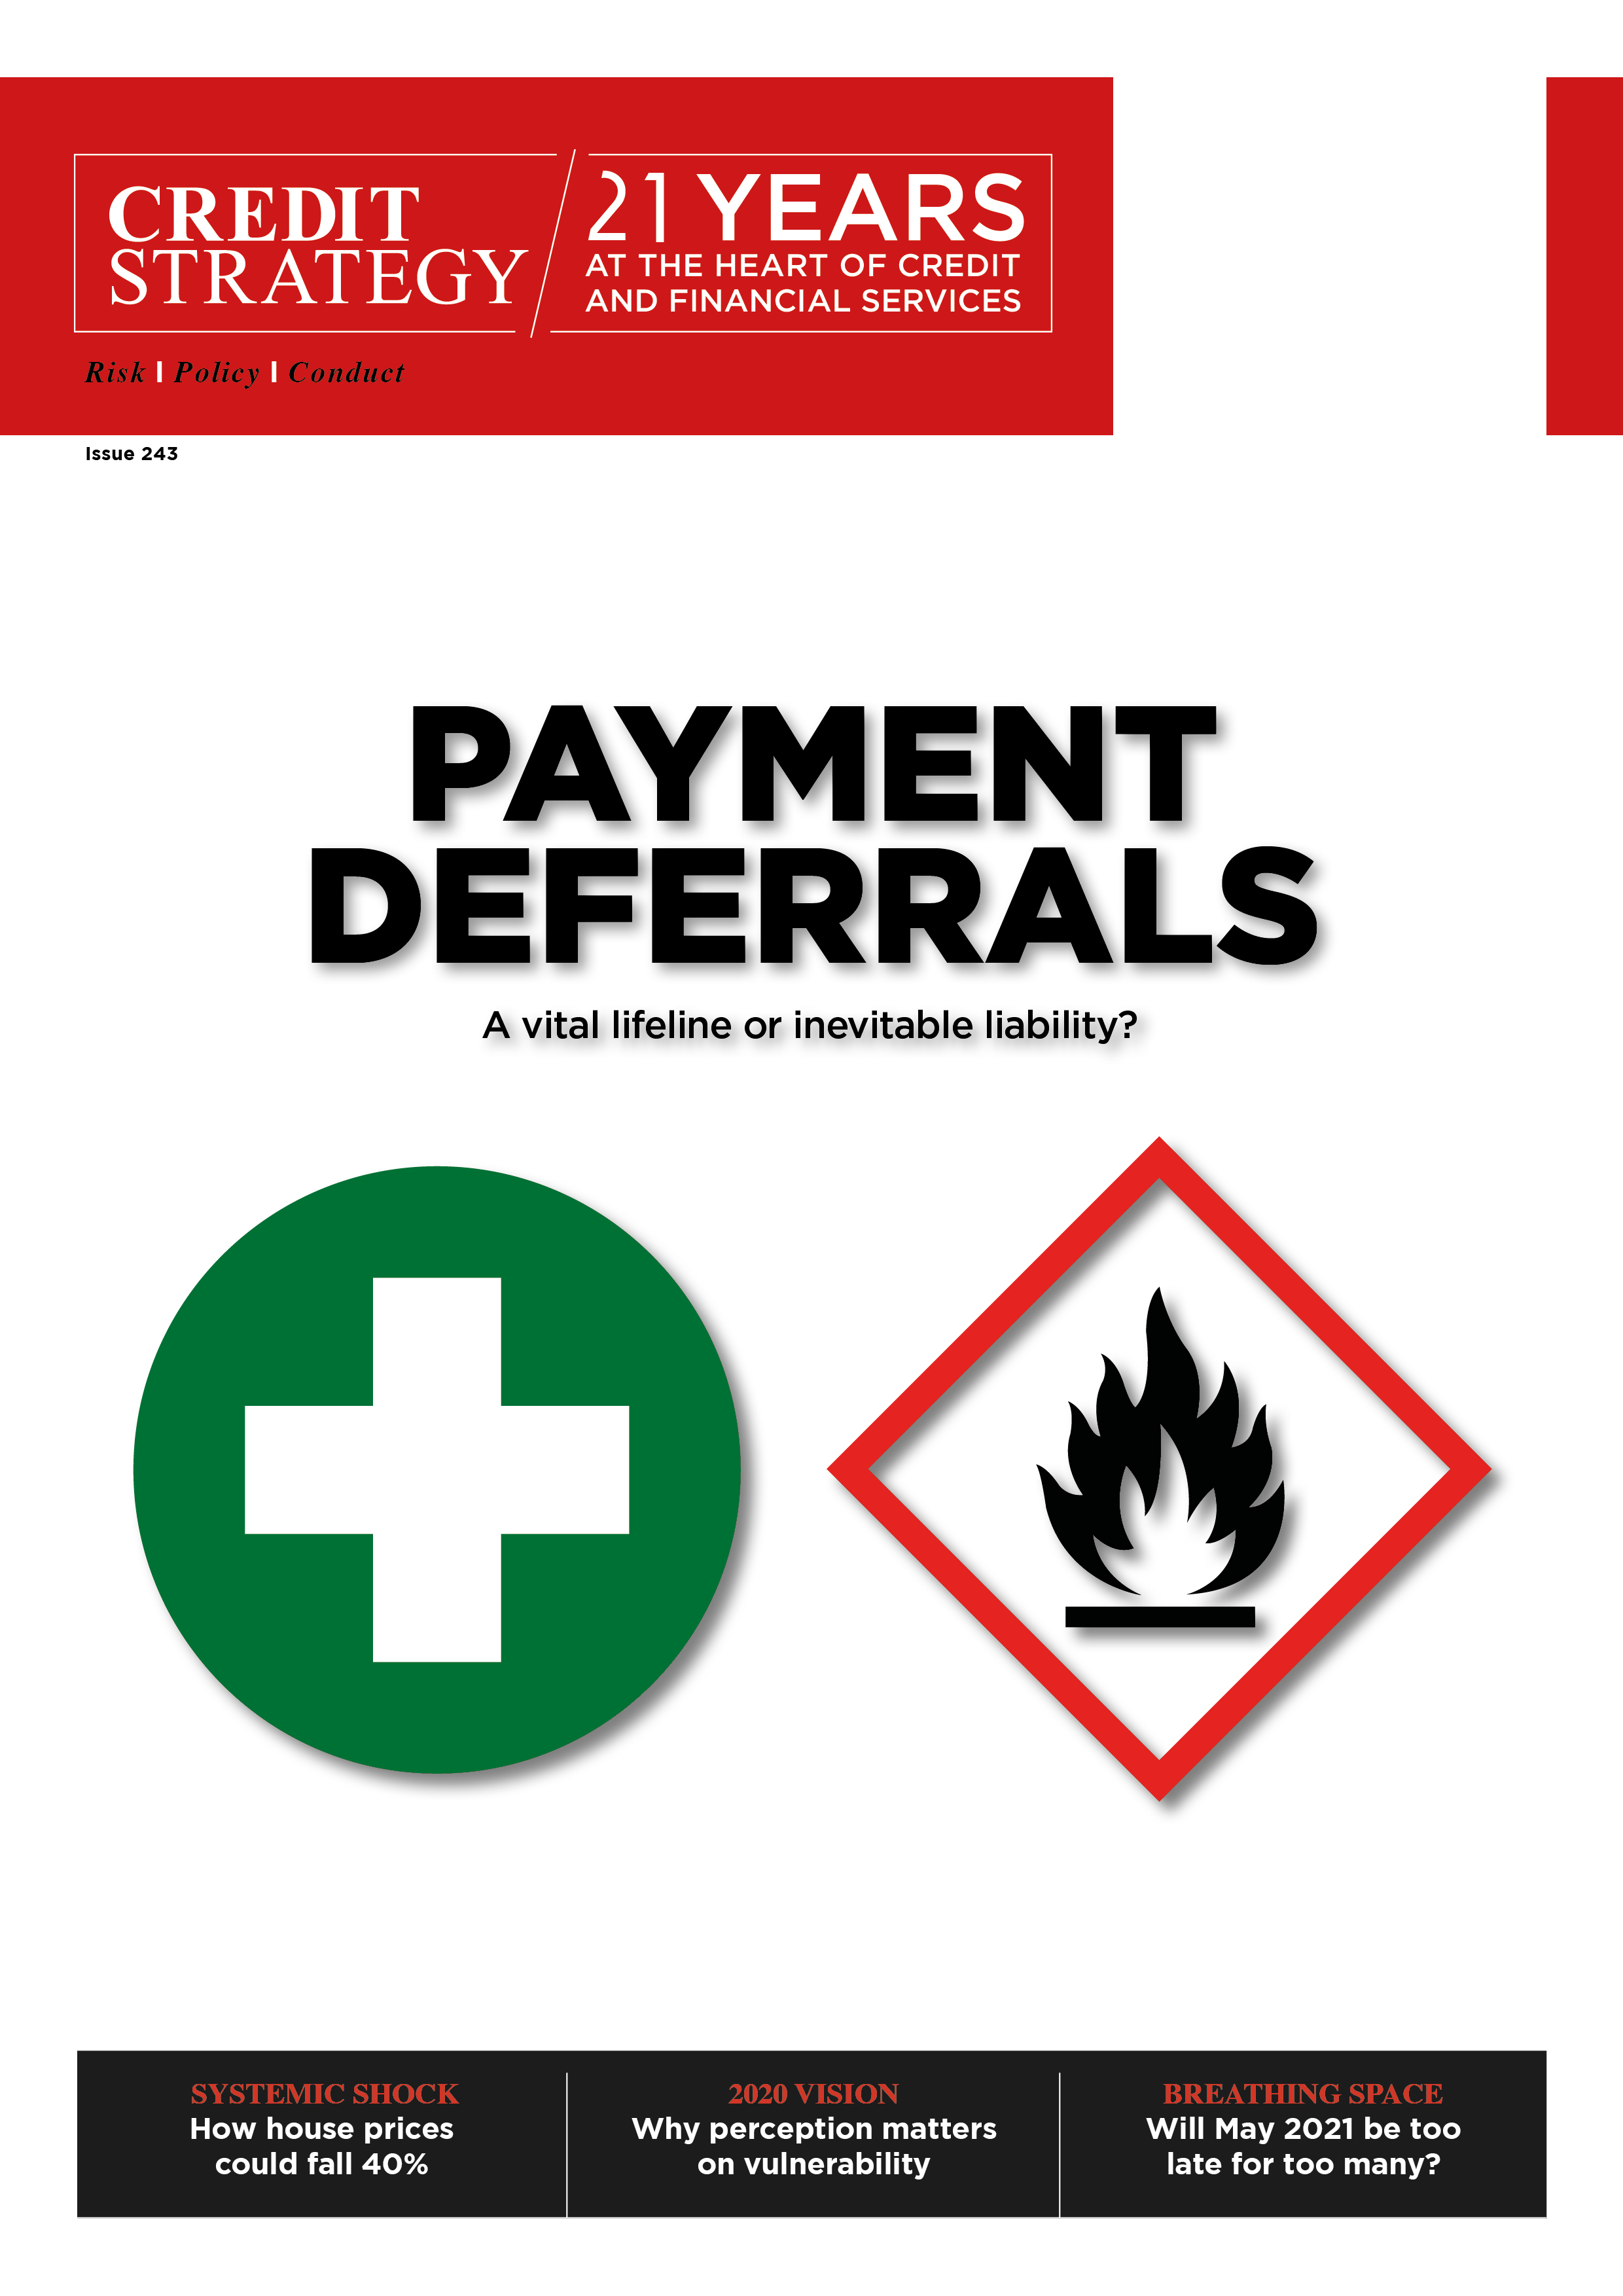 Payment deferrals: Lifeline or liability?